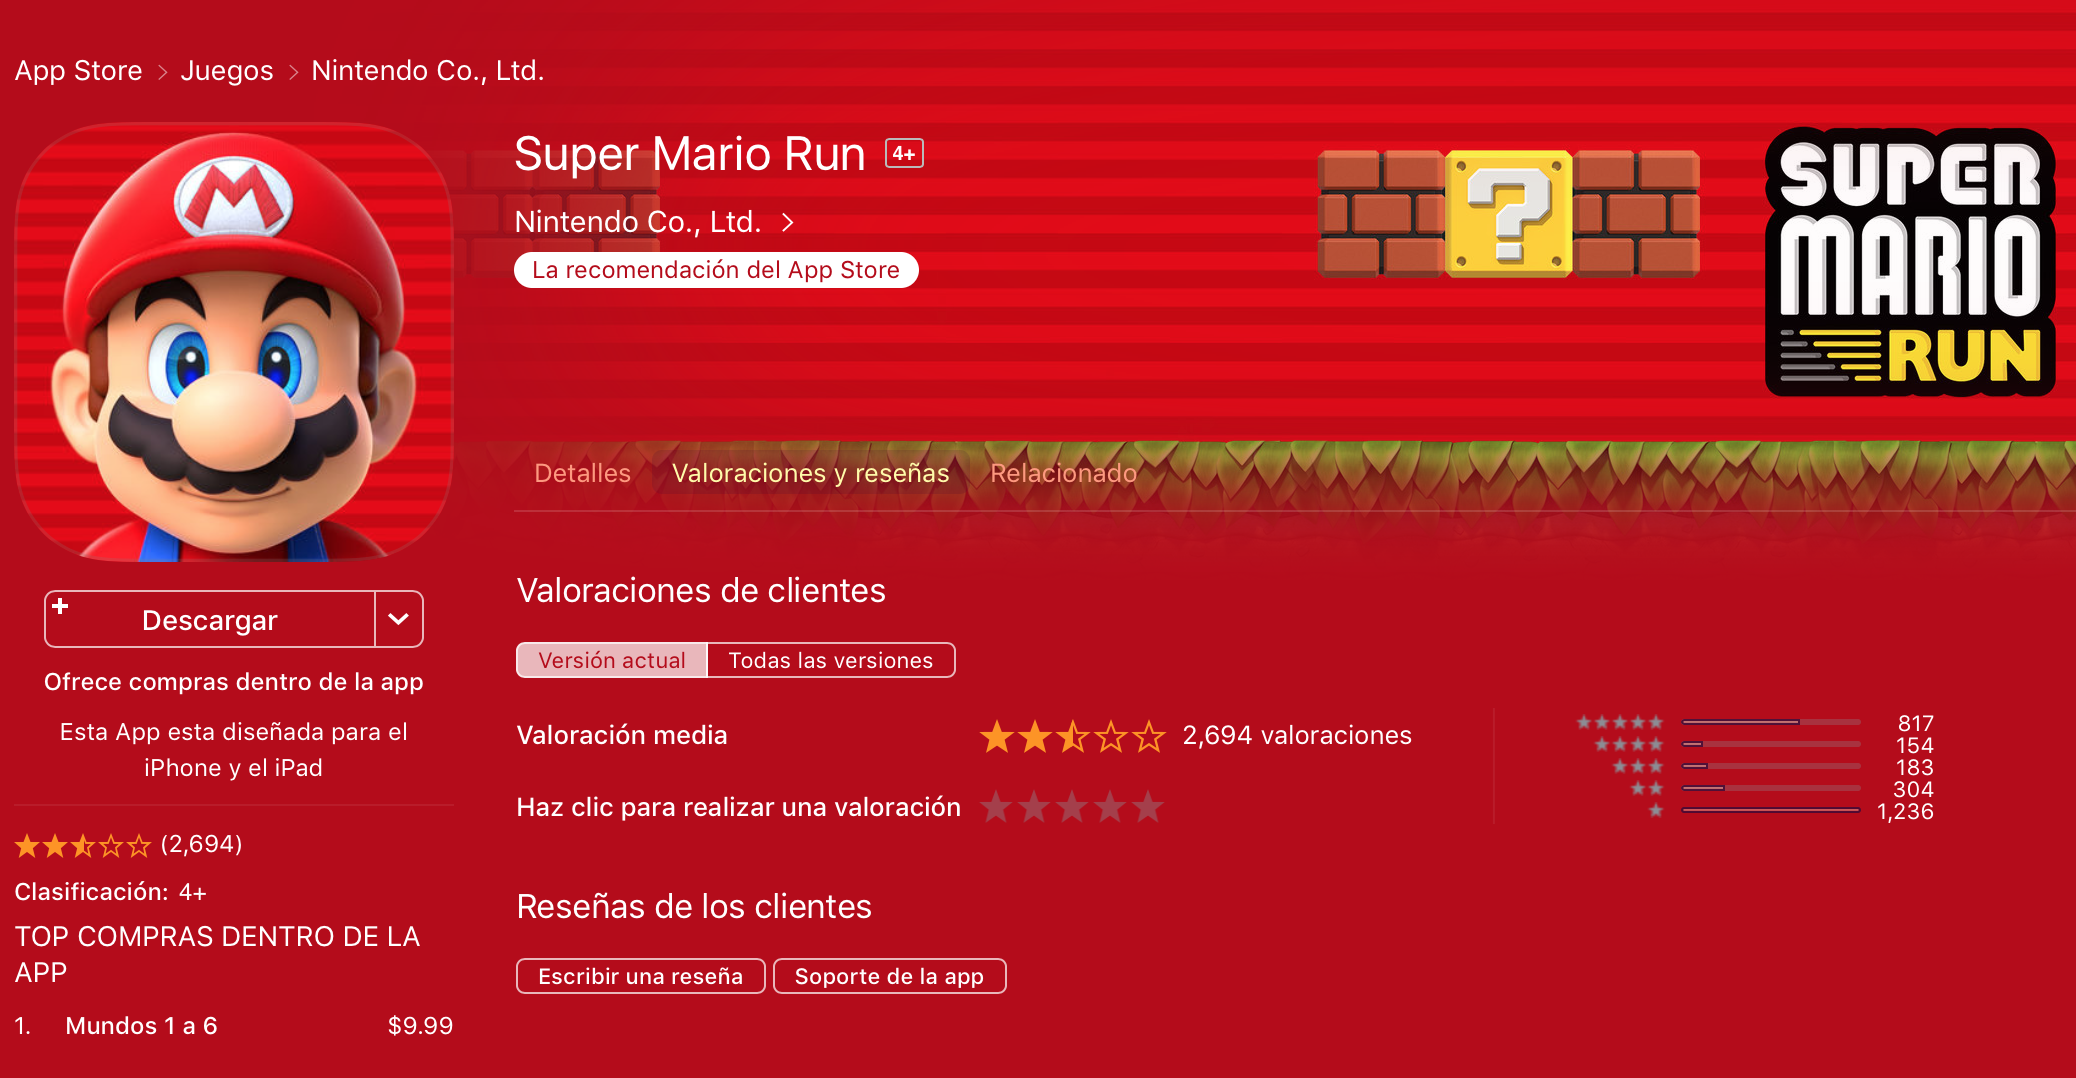 Mario reviews